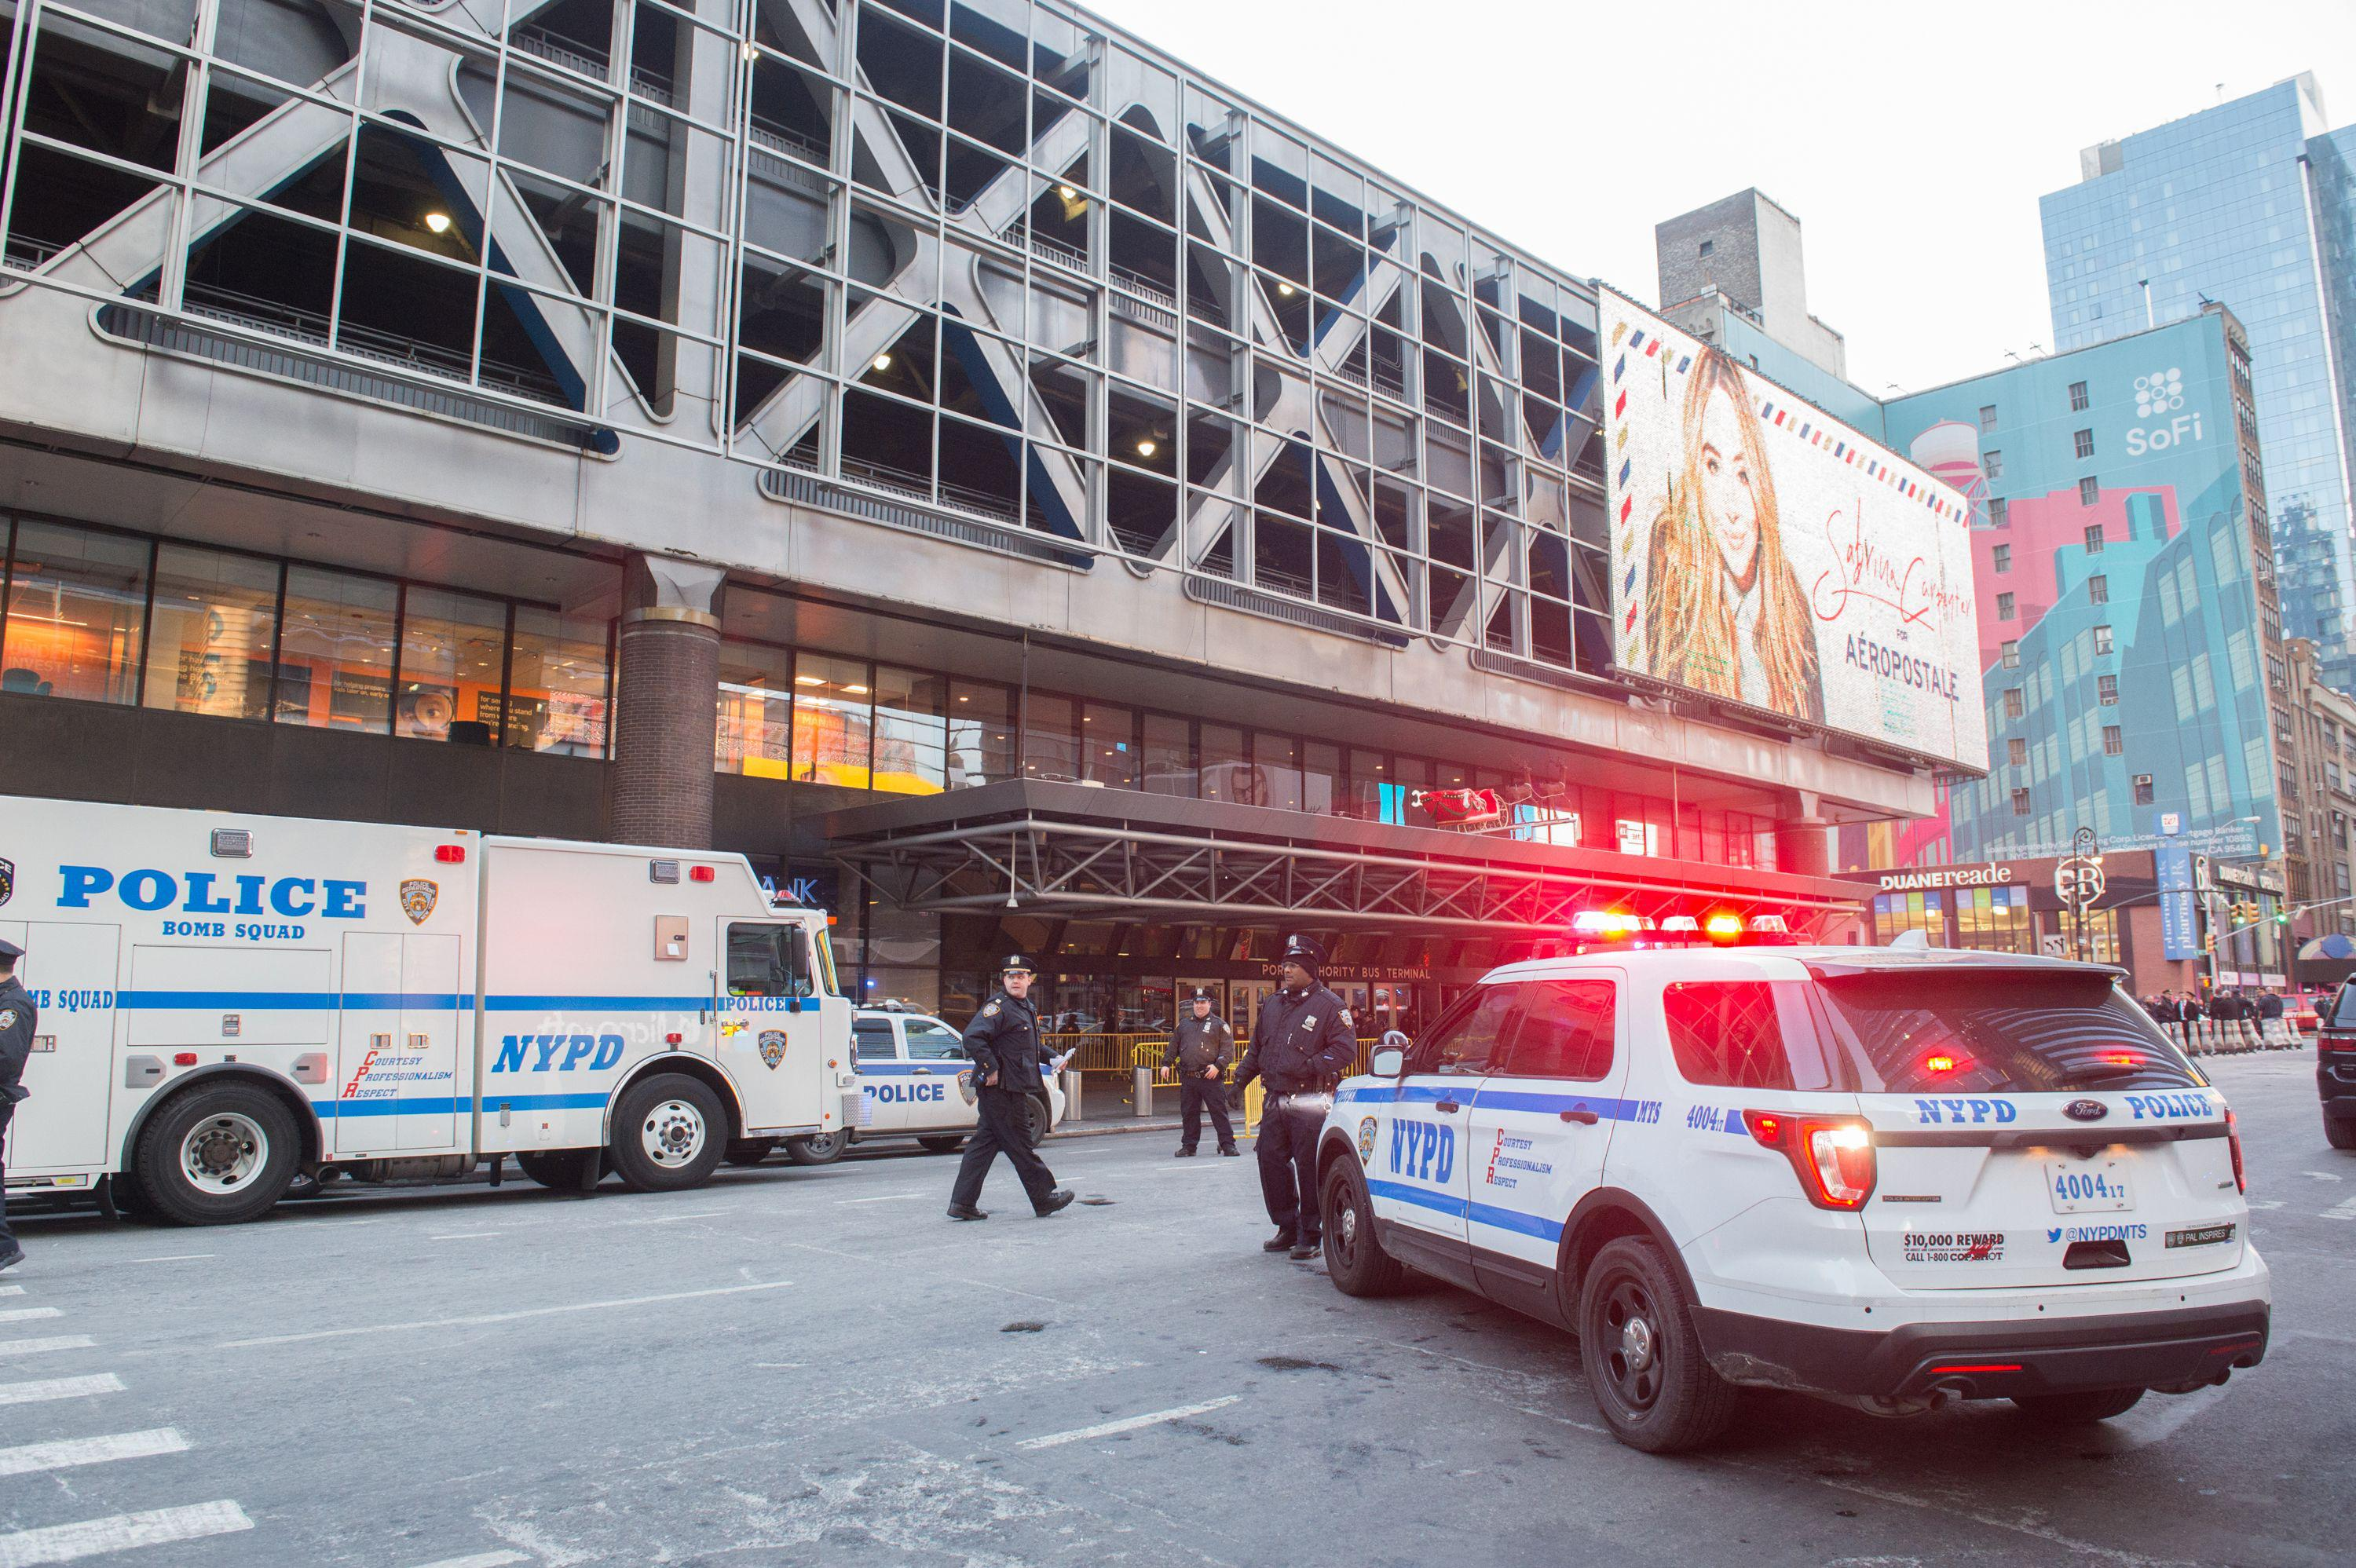 Police and other first responders respond to a reported explosion at the Port Authority Bus Terminal on December 11, 2017 in New York.         New York police said Monday that they were investigating an explosion of 'unknown origin' in busy downtown Manhattan, and that people were being evacuated. Media reports said at least one person had been detained after the blast near the Port Authority transit terminal, close to Times Square.Early media reports said the blast came from a pipe bomb, and that several people were injured.          / AFP PHOTO / Bryan R. Smith        (Photo credit should read BRYAN R. SMITH/AFP/Getty Images)